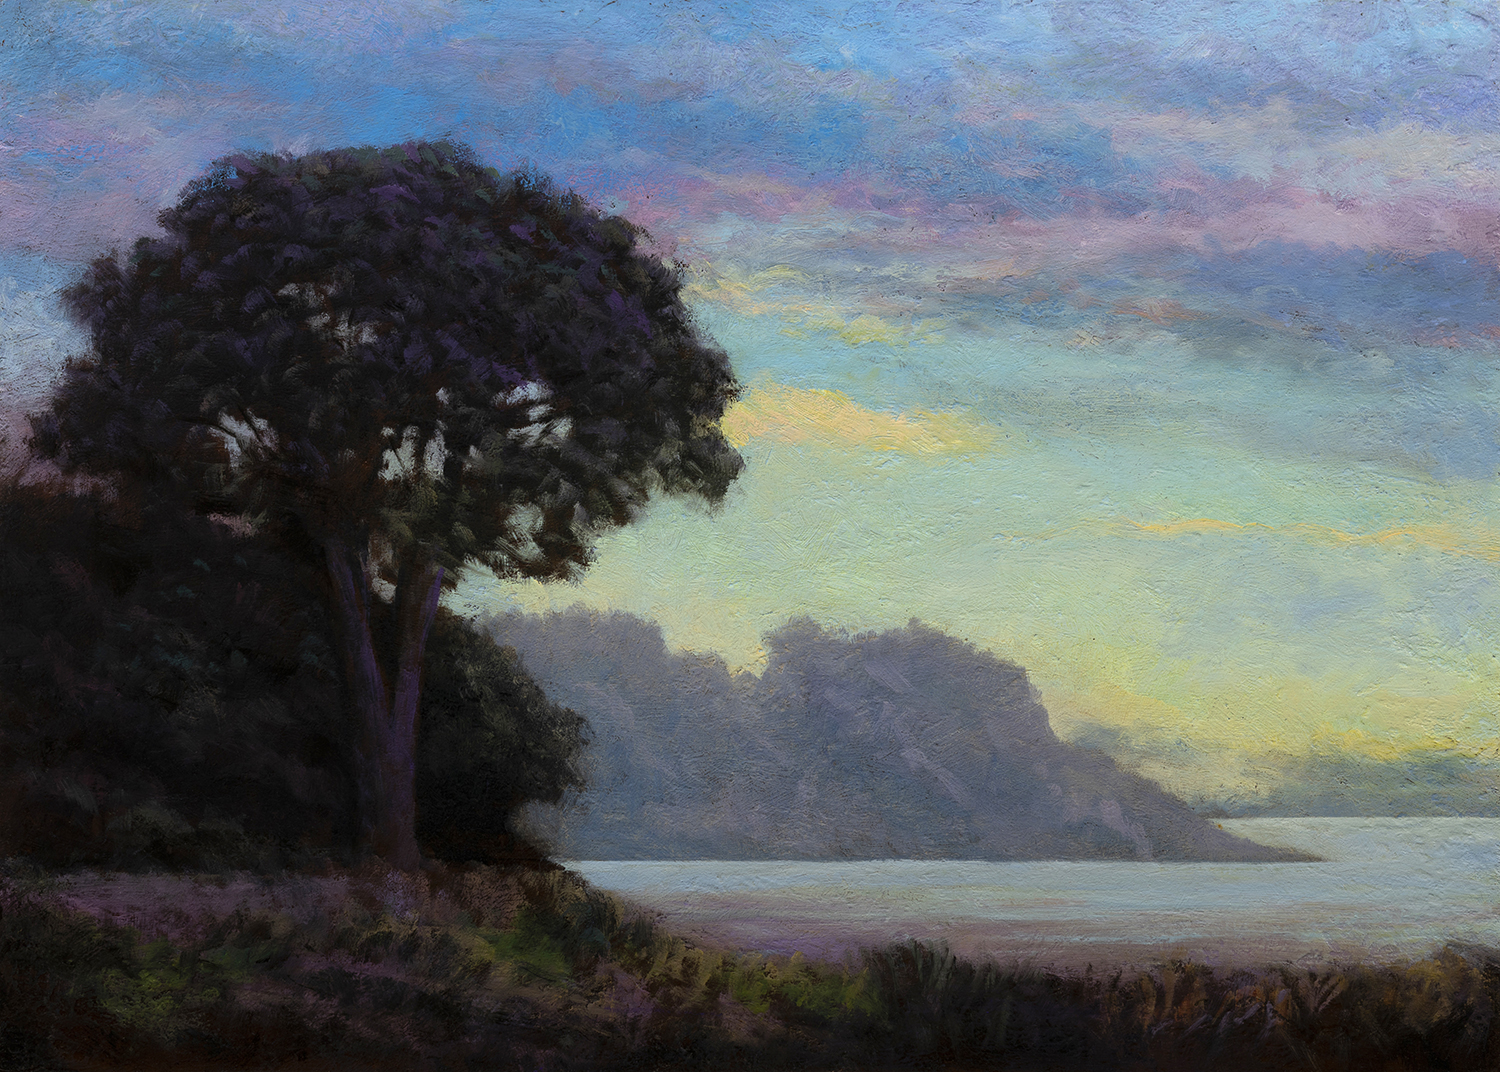 Morning by the Bay by M Francis McCarthy - 10x14 Oil on Wood Panel